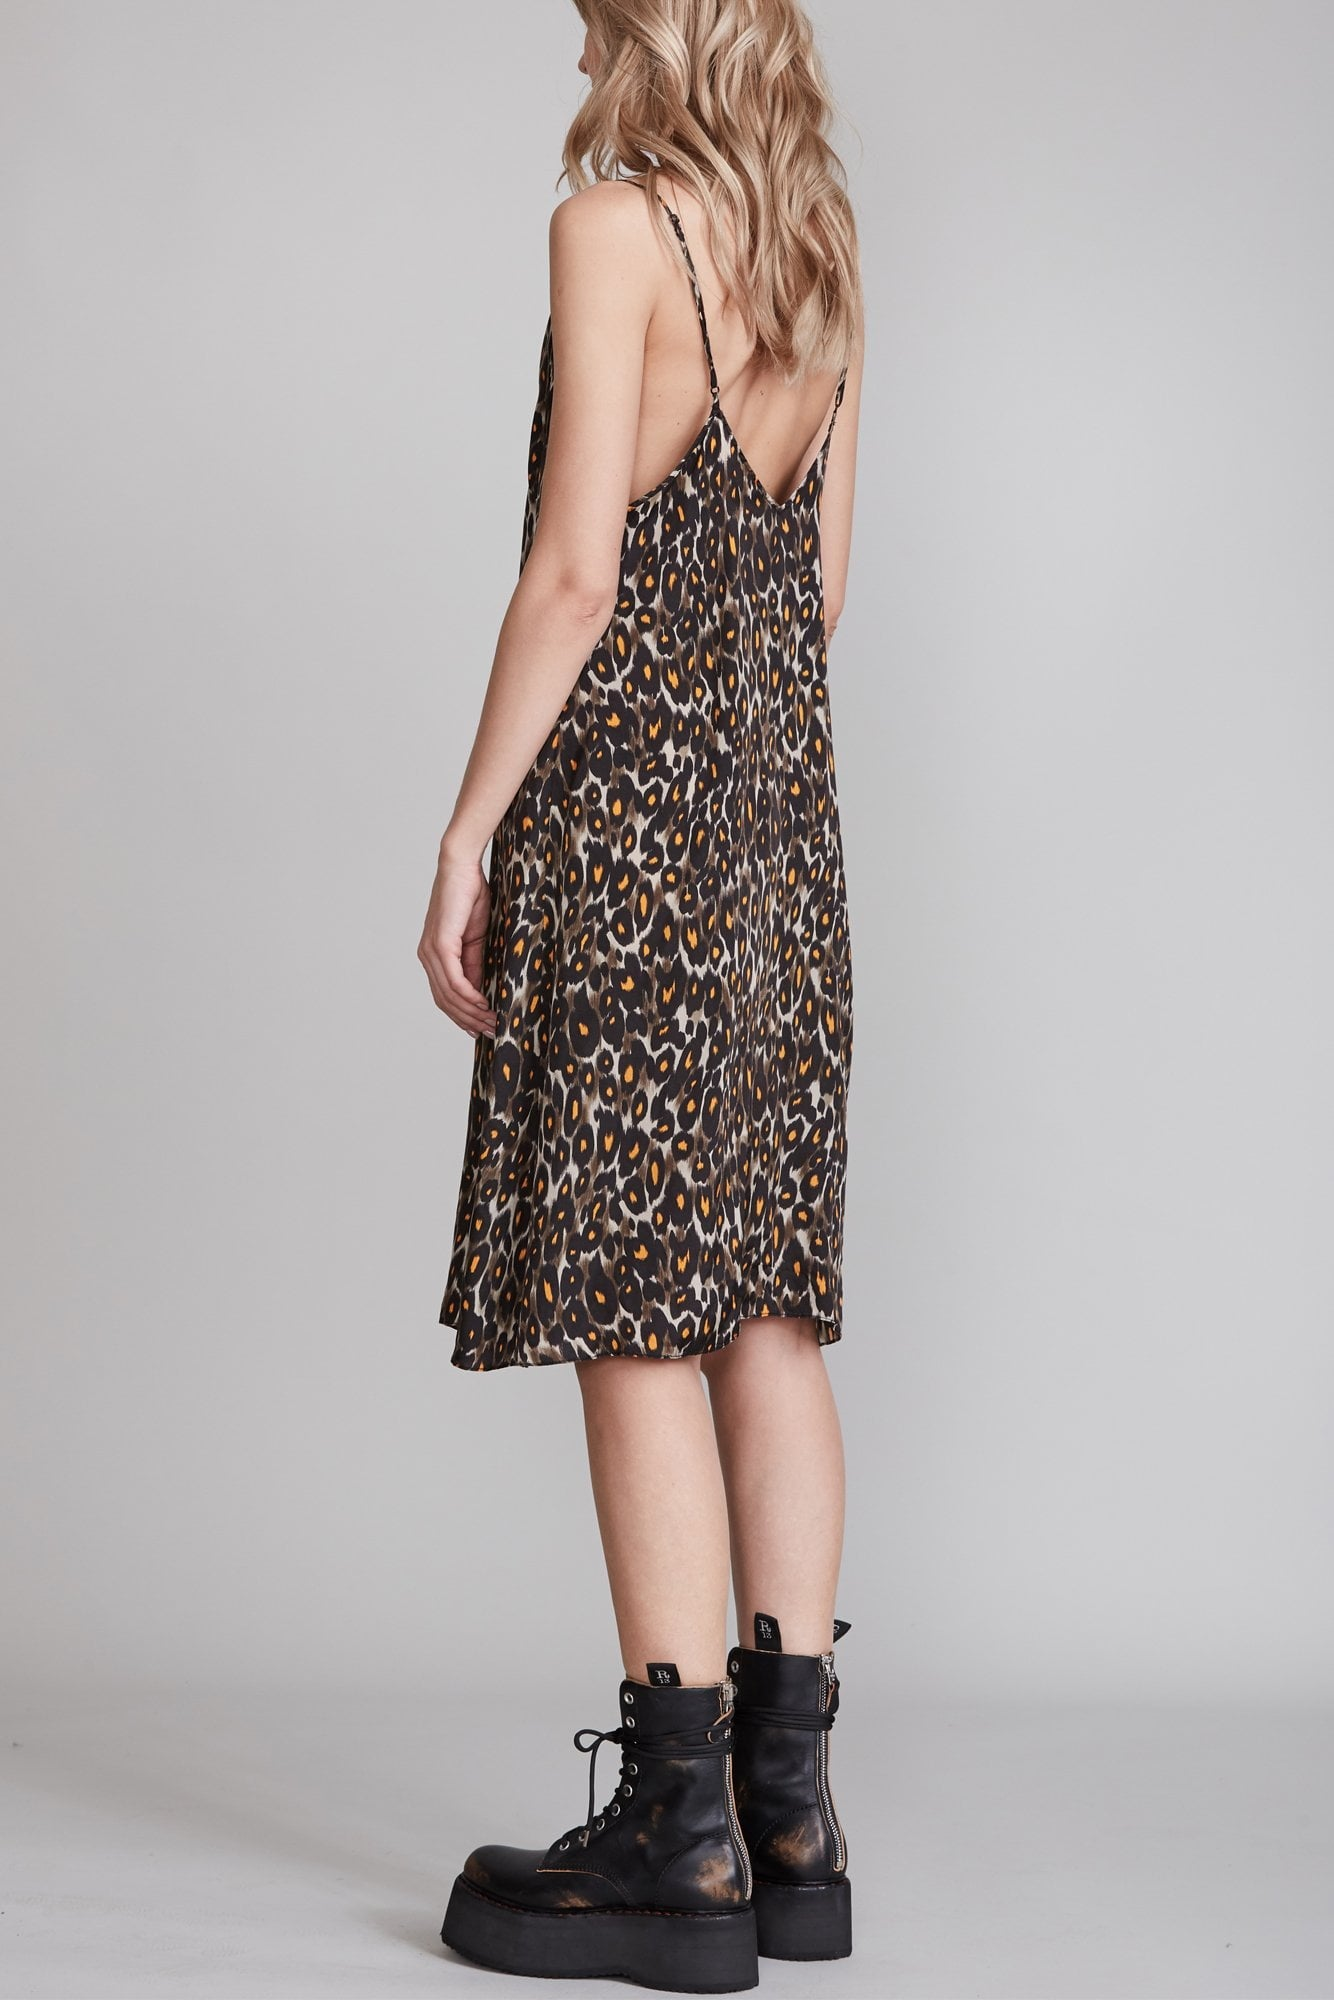 Midi Slip Dress with Back Tie - Grey and Orange Leopard